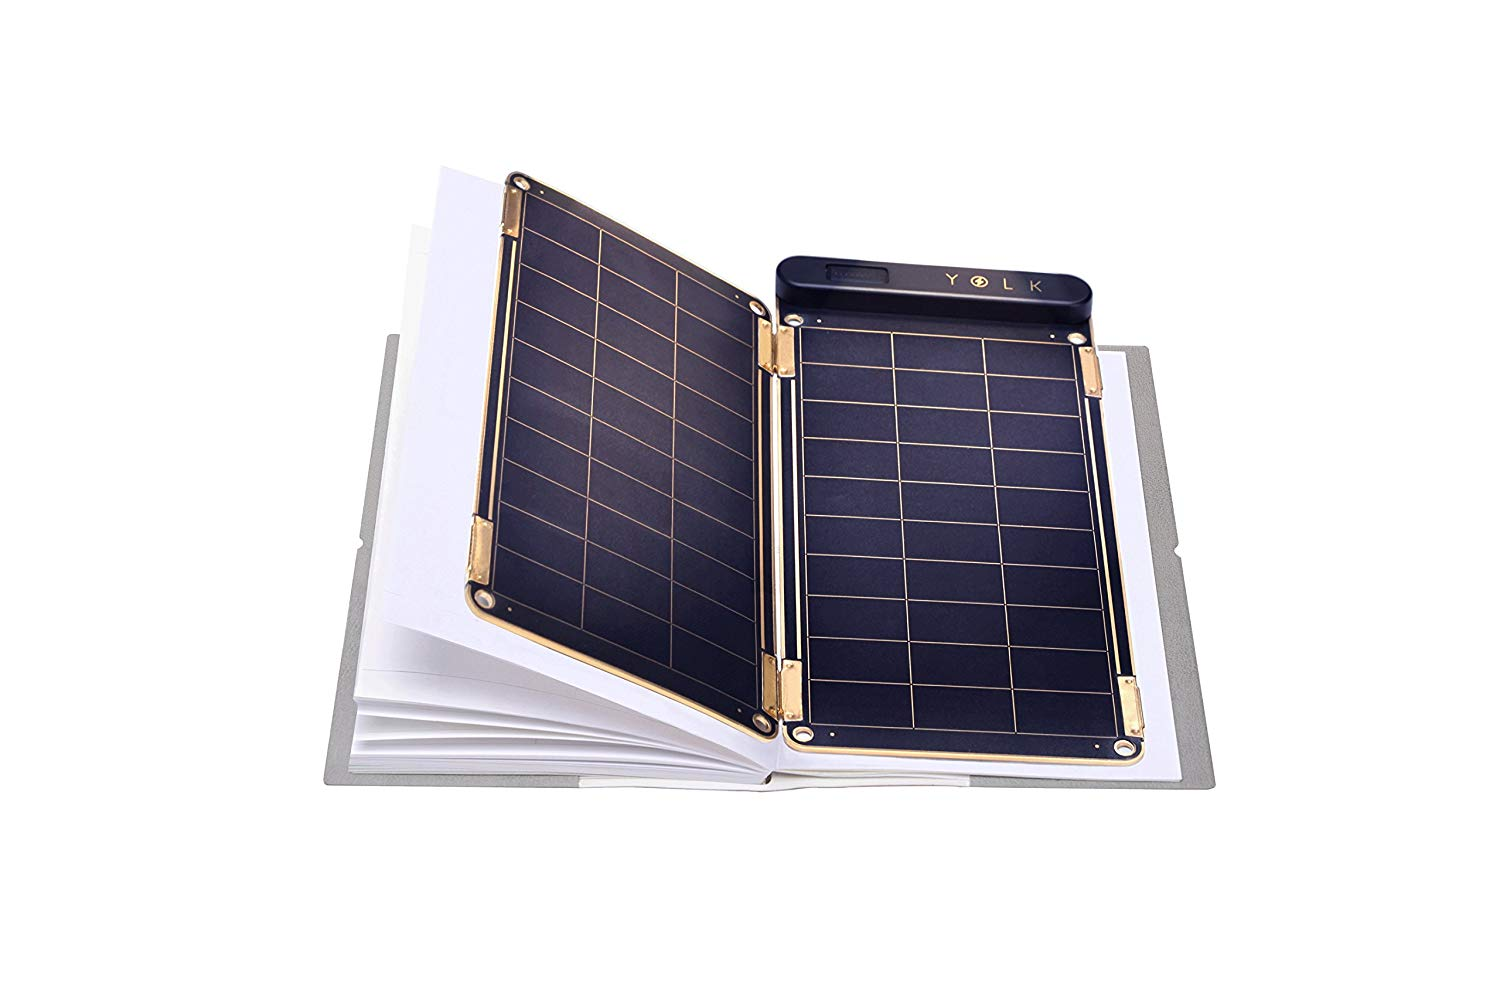 Solar-Paper--Pouch-Paper-Thin-and-Light-Portable-Solar-Charger-with-Ultra-High-Efficiency-5W-